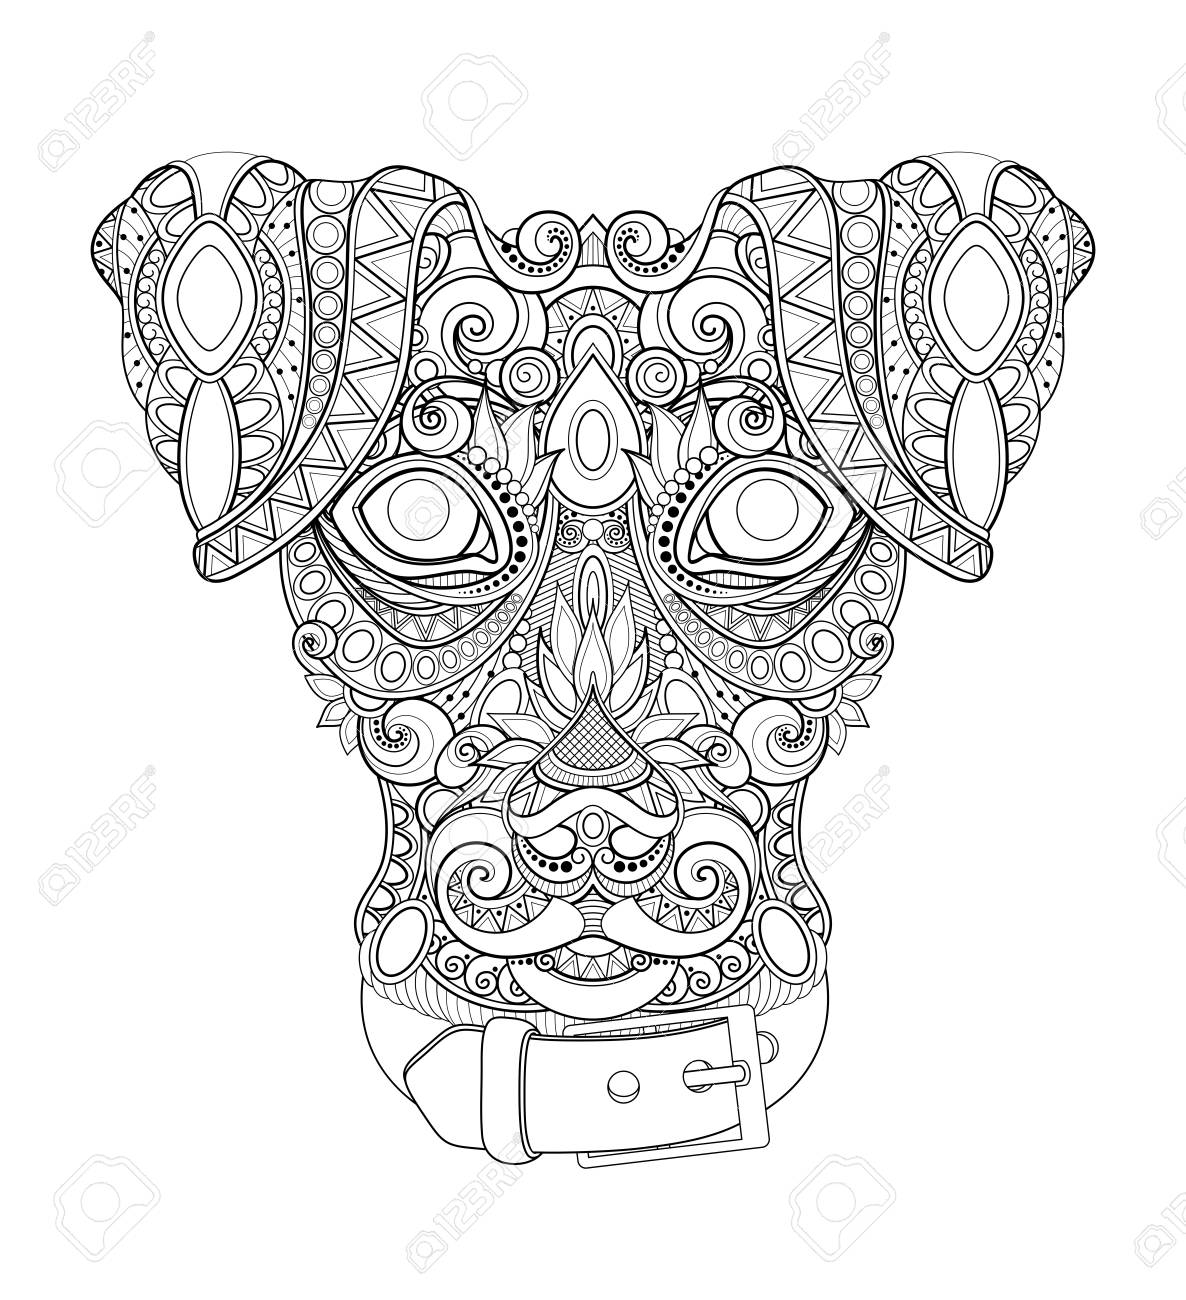 Monochrome Decorative Dog, Human Best Friend Face. Doodle Style. Patterned Tribal Design. Symbol of the 2018 New Year by Chinese Horoscope. Coloring Book Page. Vector Contour Illustration - 109878444